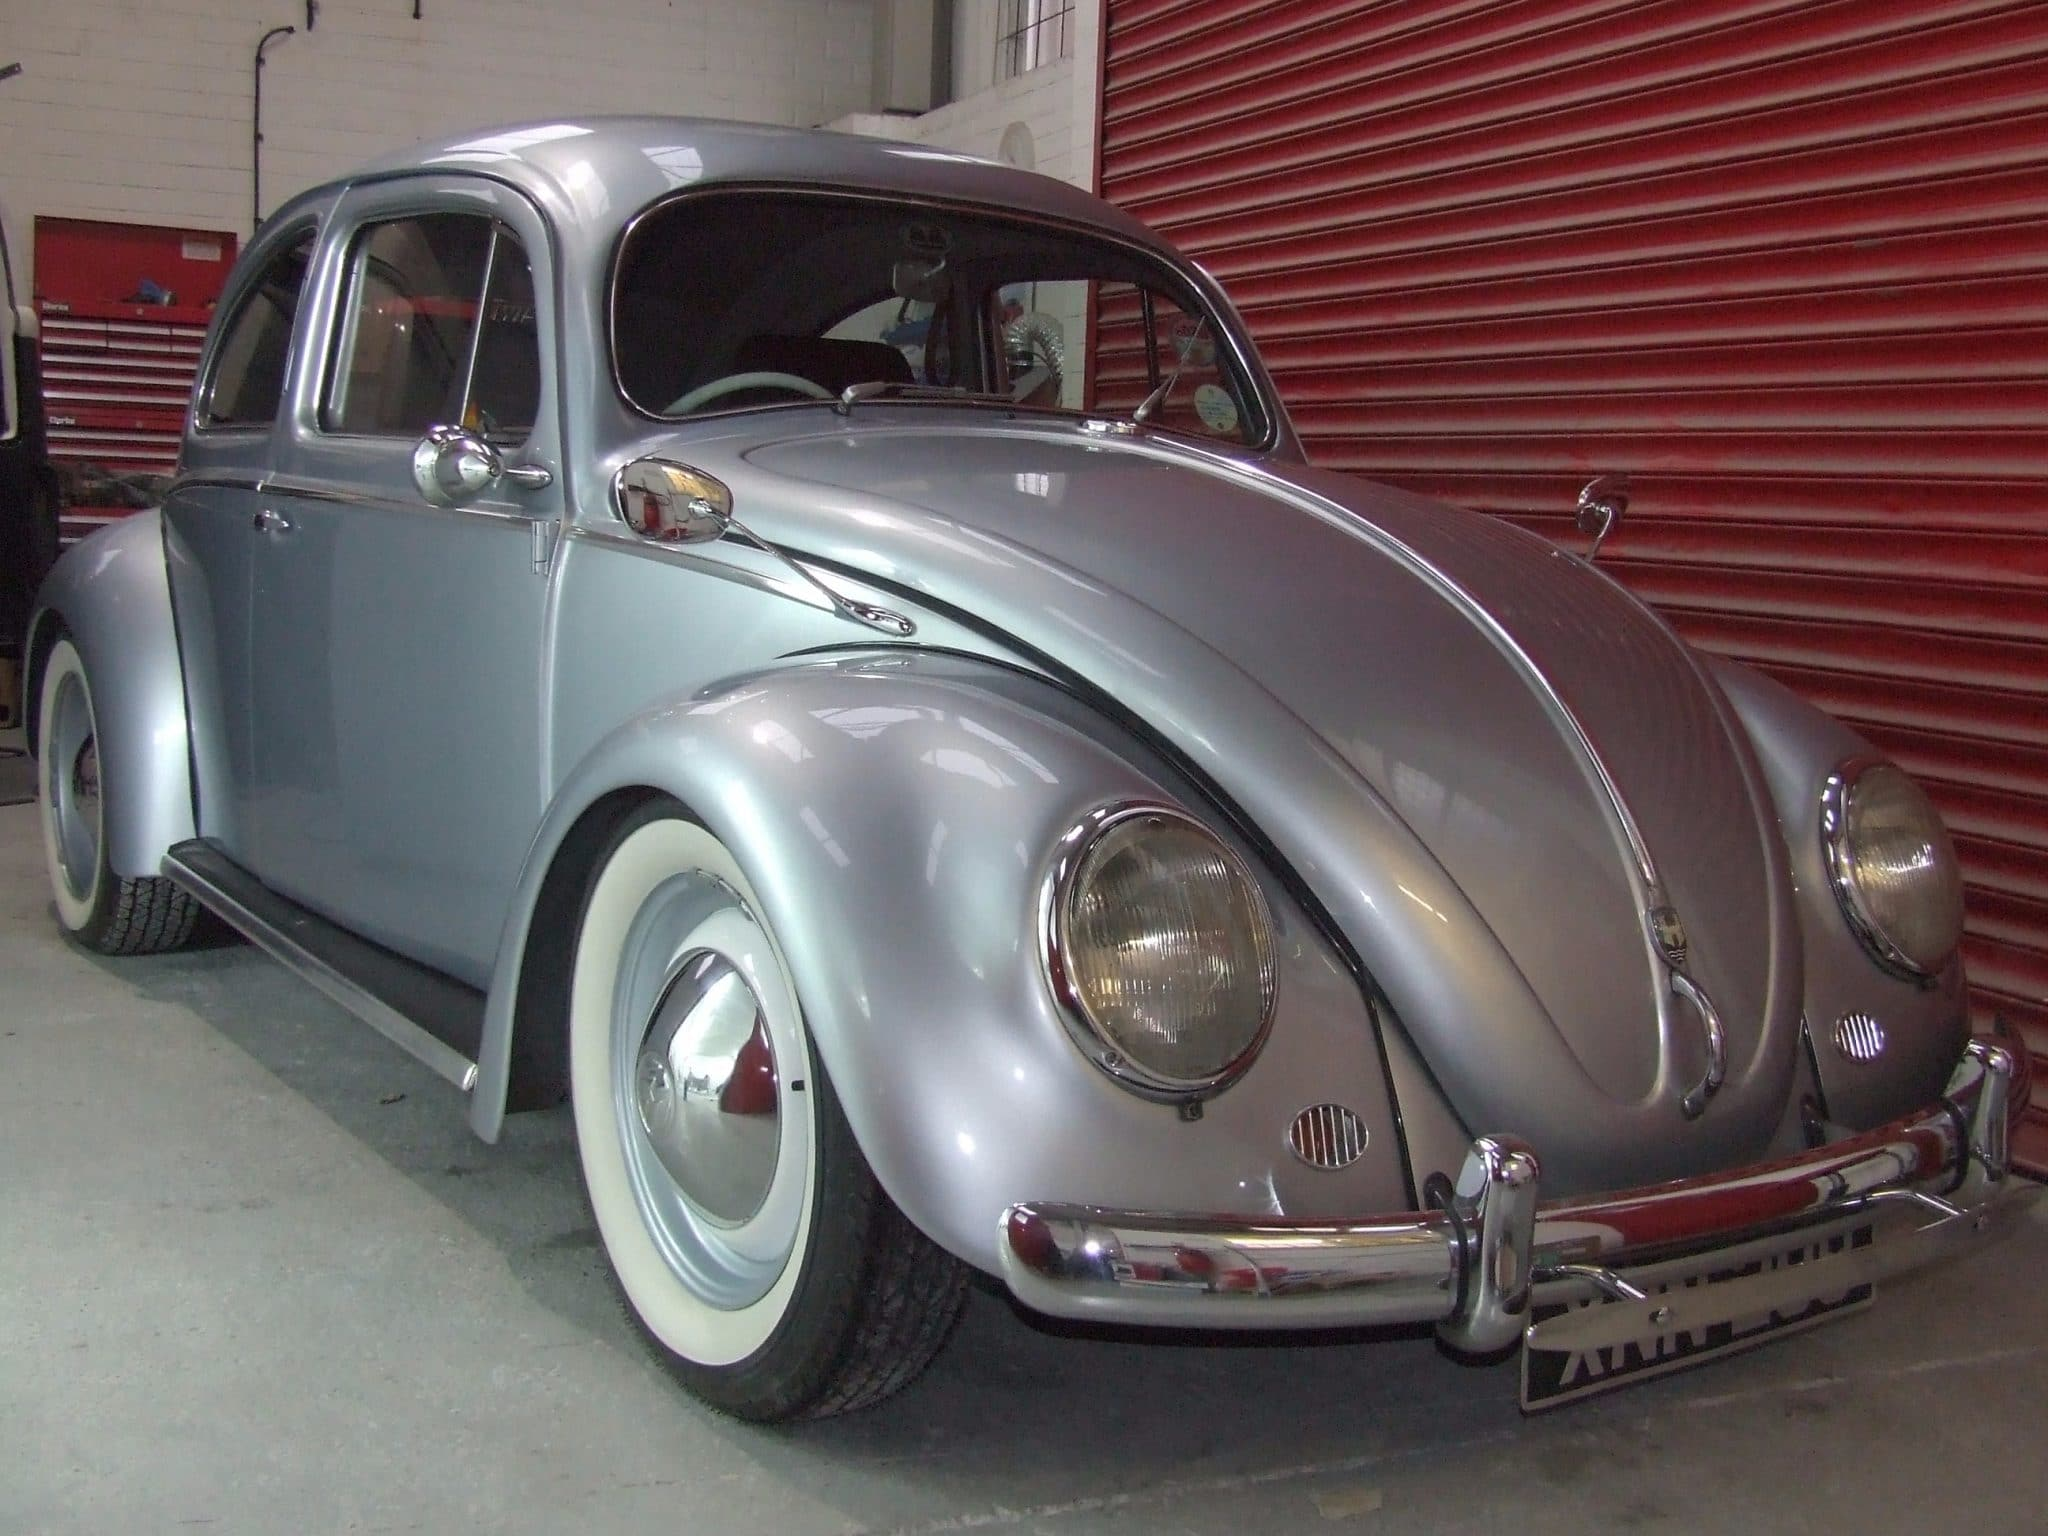 front view silver Beetle